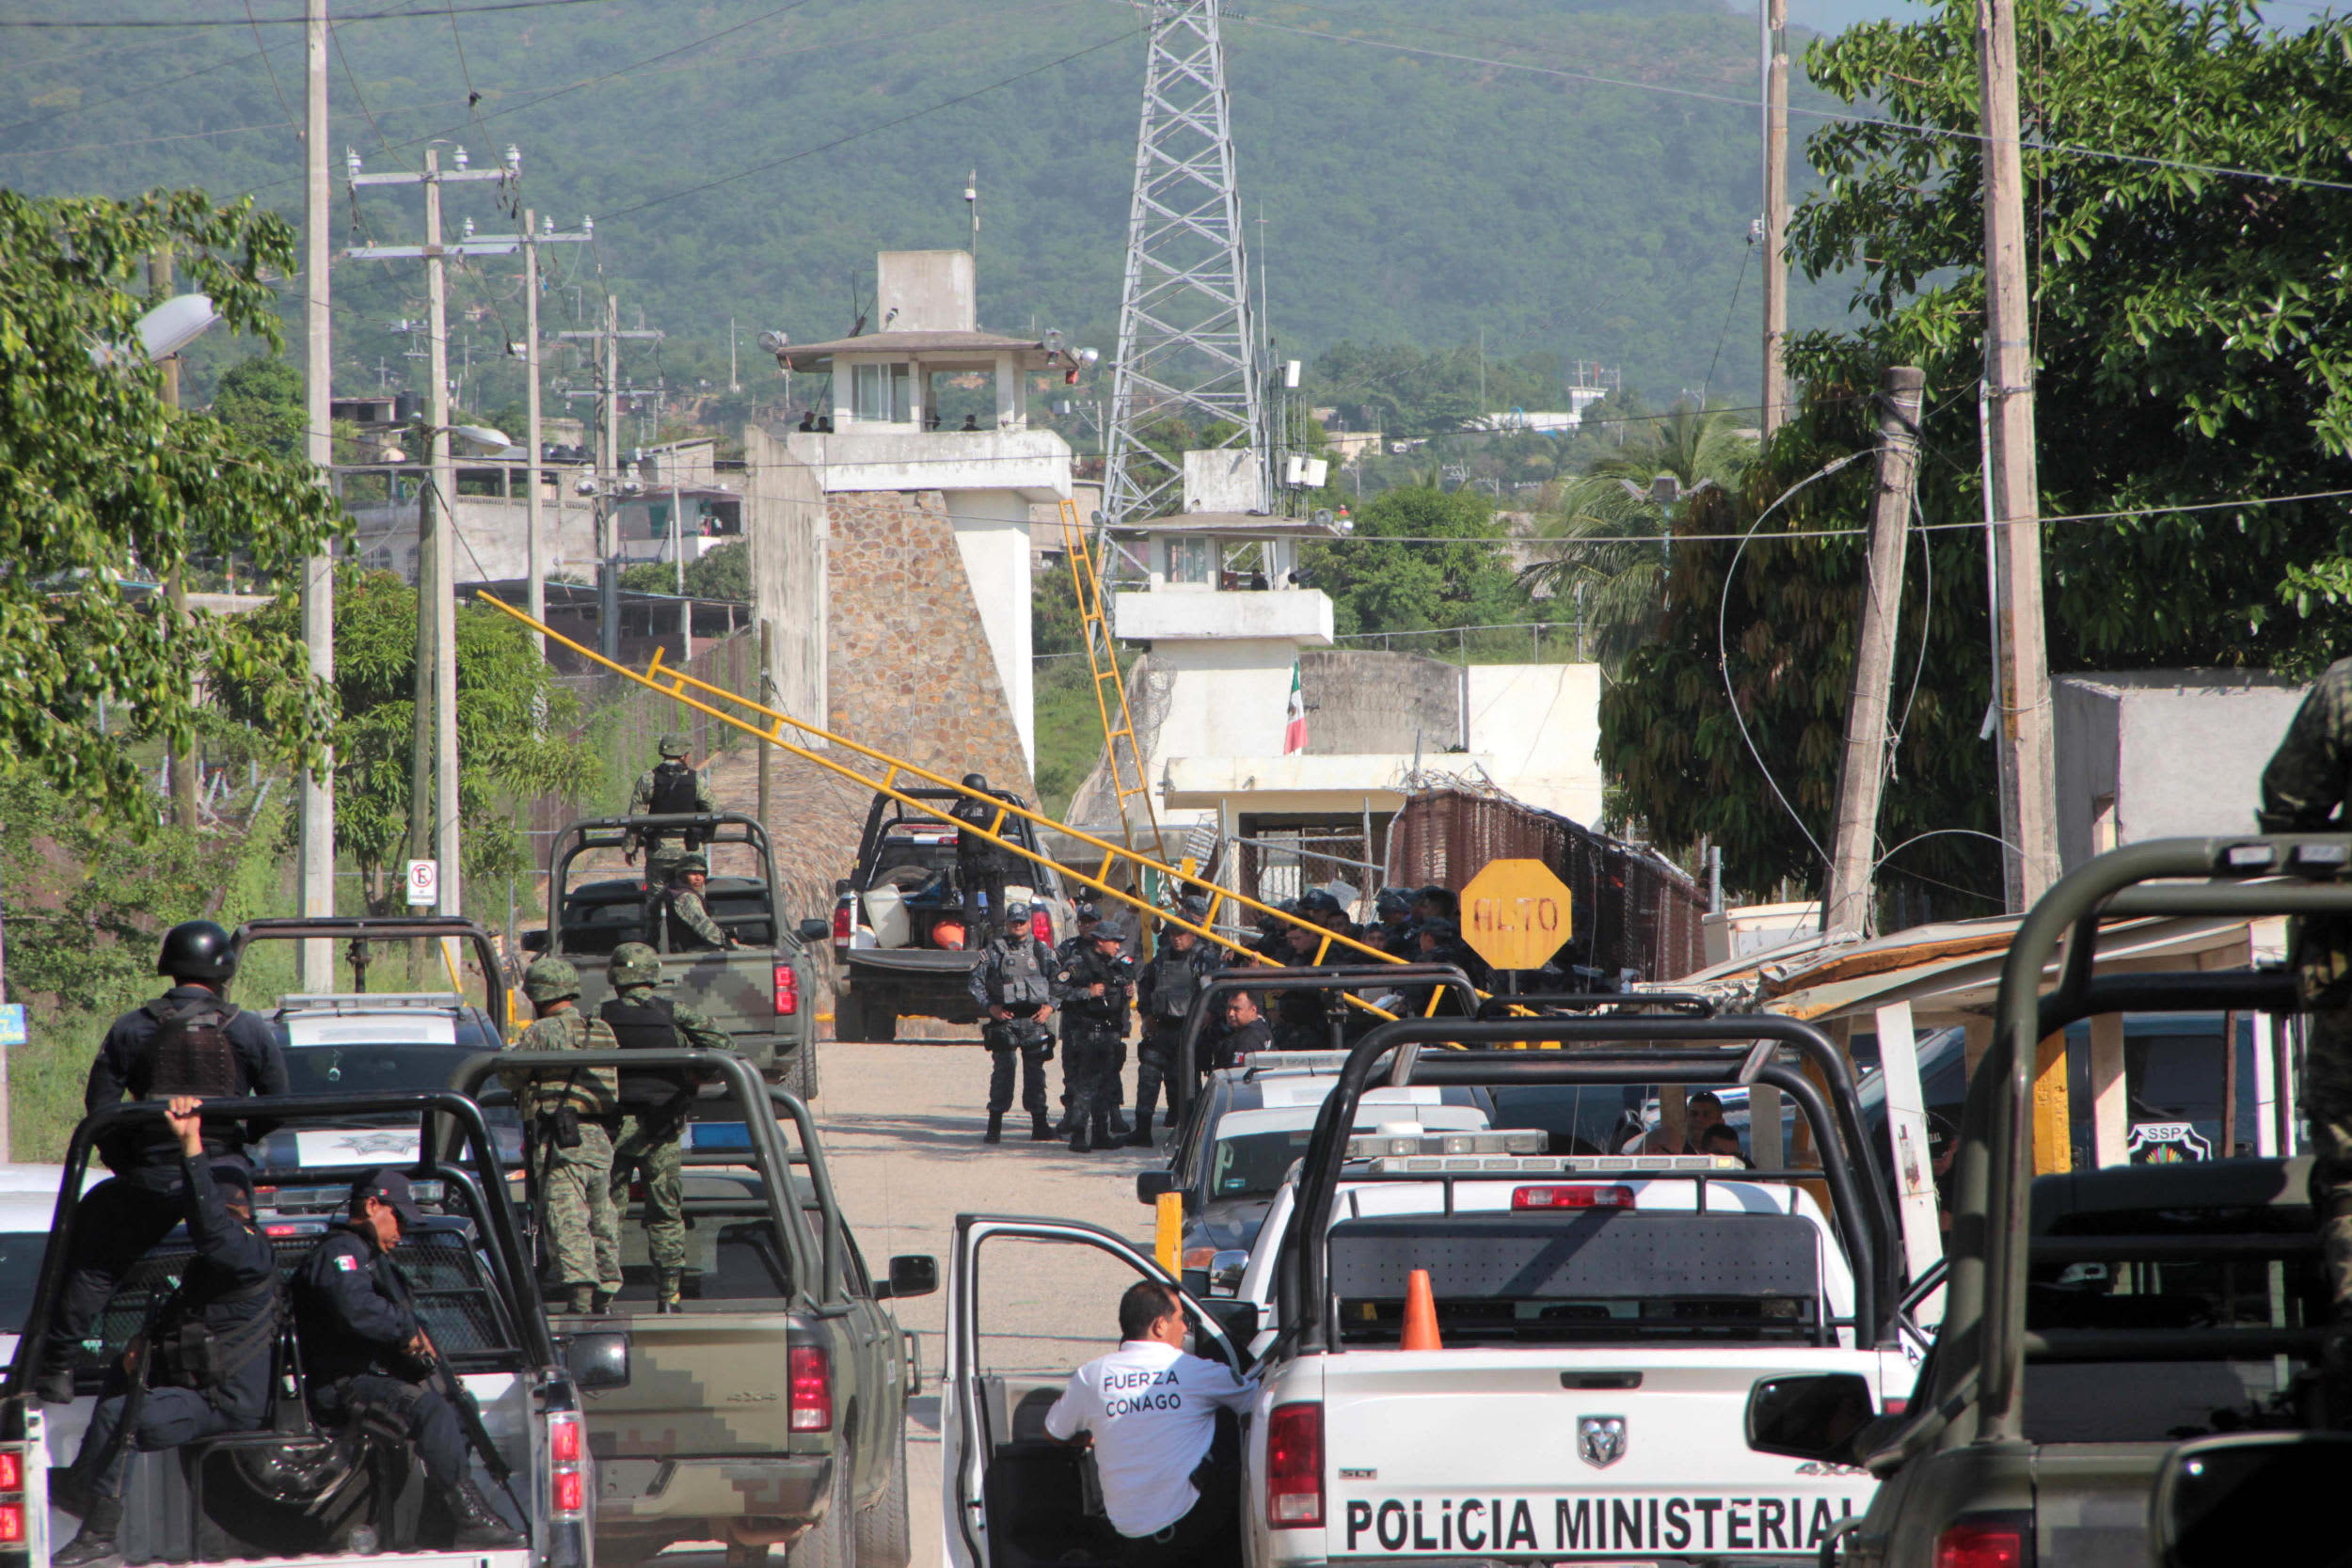 Authorities participate in an operation after a riot in which at least five inmates lost their lives in the Acapulco jail in Acapulco, state of Guerrero, Mexico, 06 July 2017. Five prisoners were killed and one more wounded in a confrontation of two rival groups.